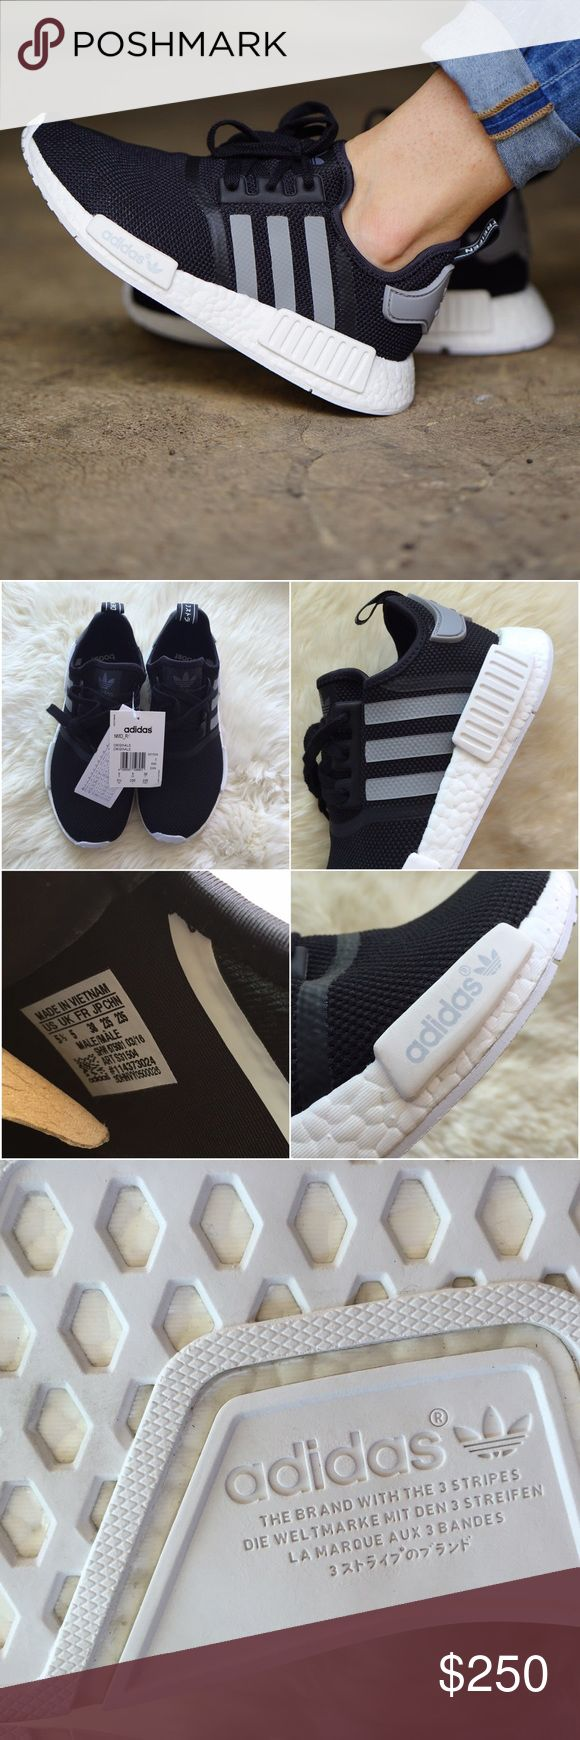 adidas nmd r1 shoes women running adidas gazelle blue style brno